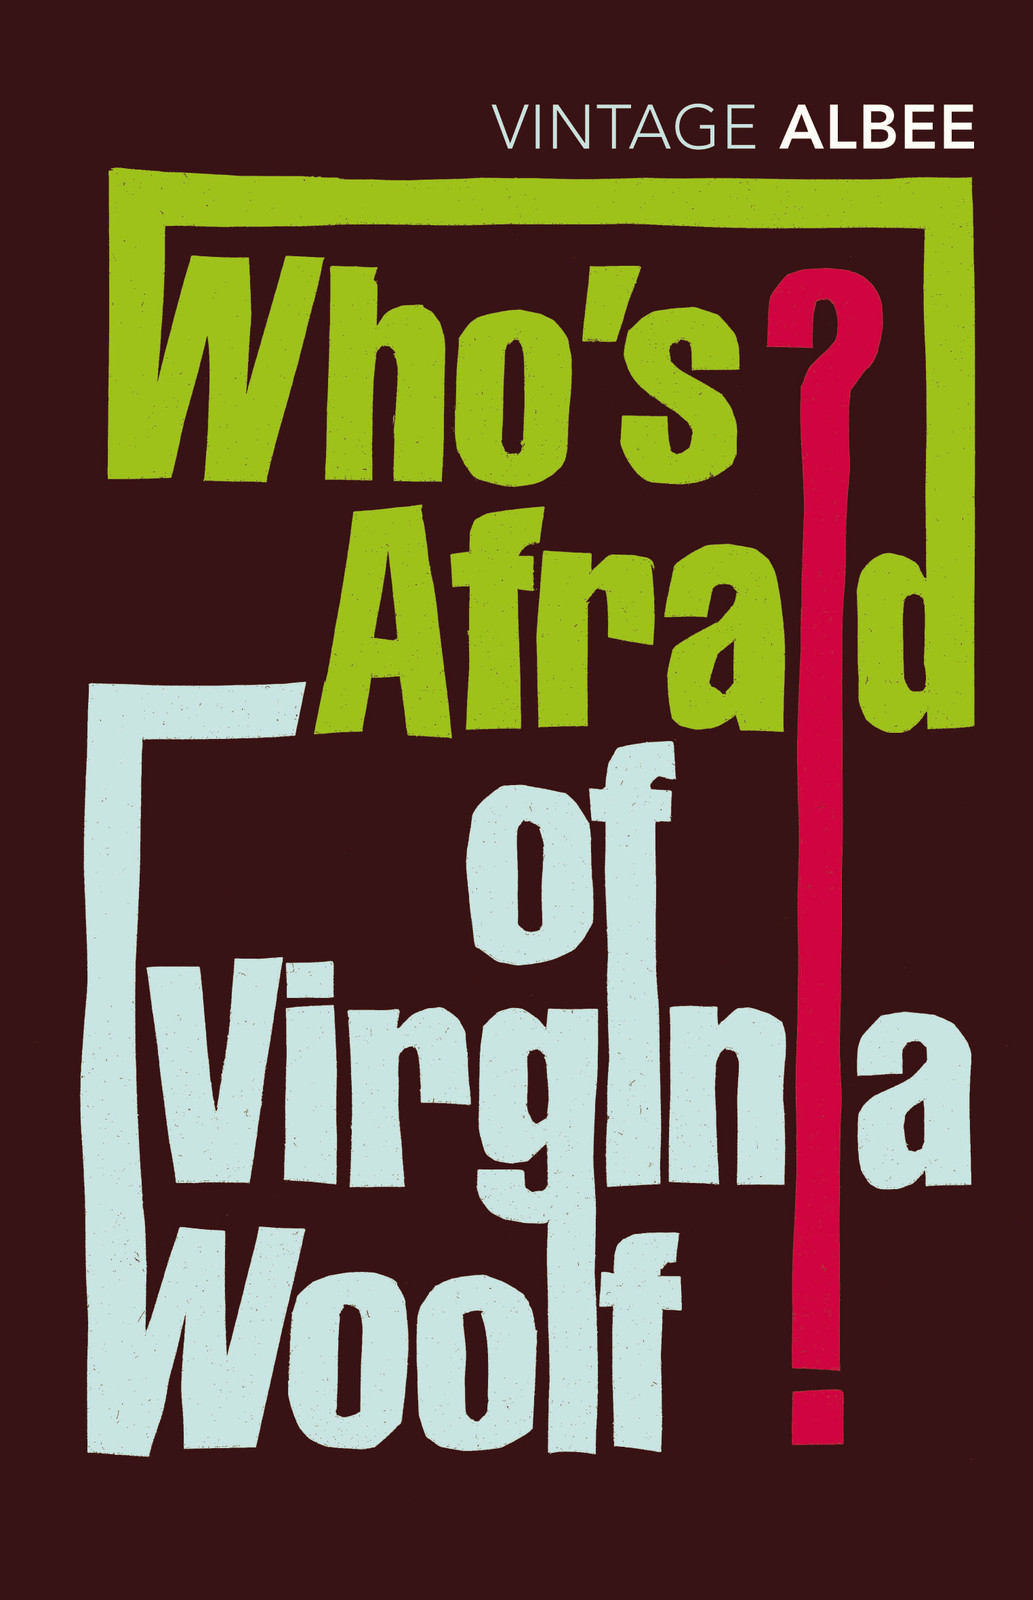 Who's Afraid of Virginia Woolf? by Edward Albee image